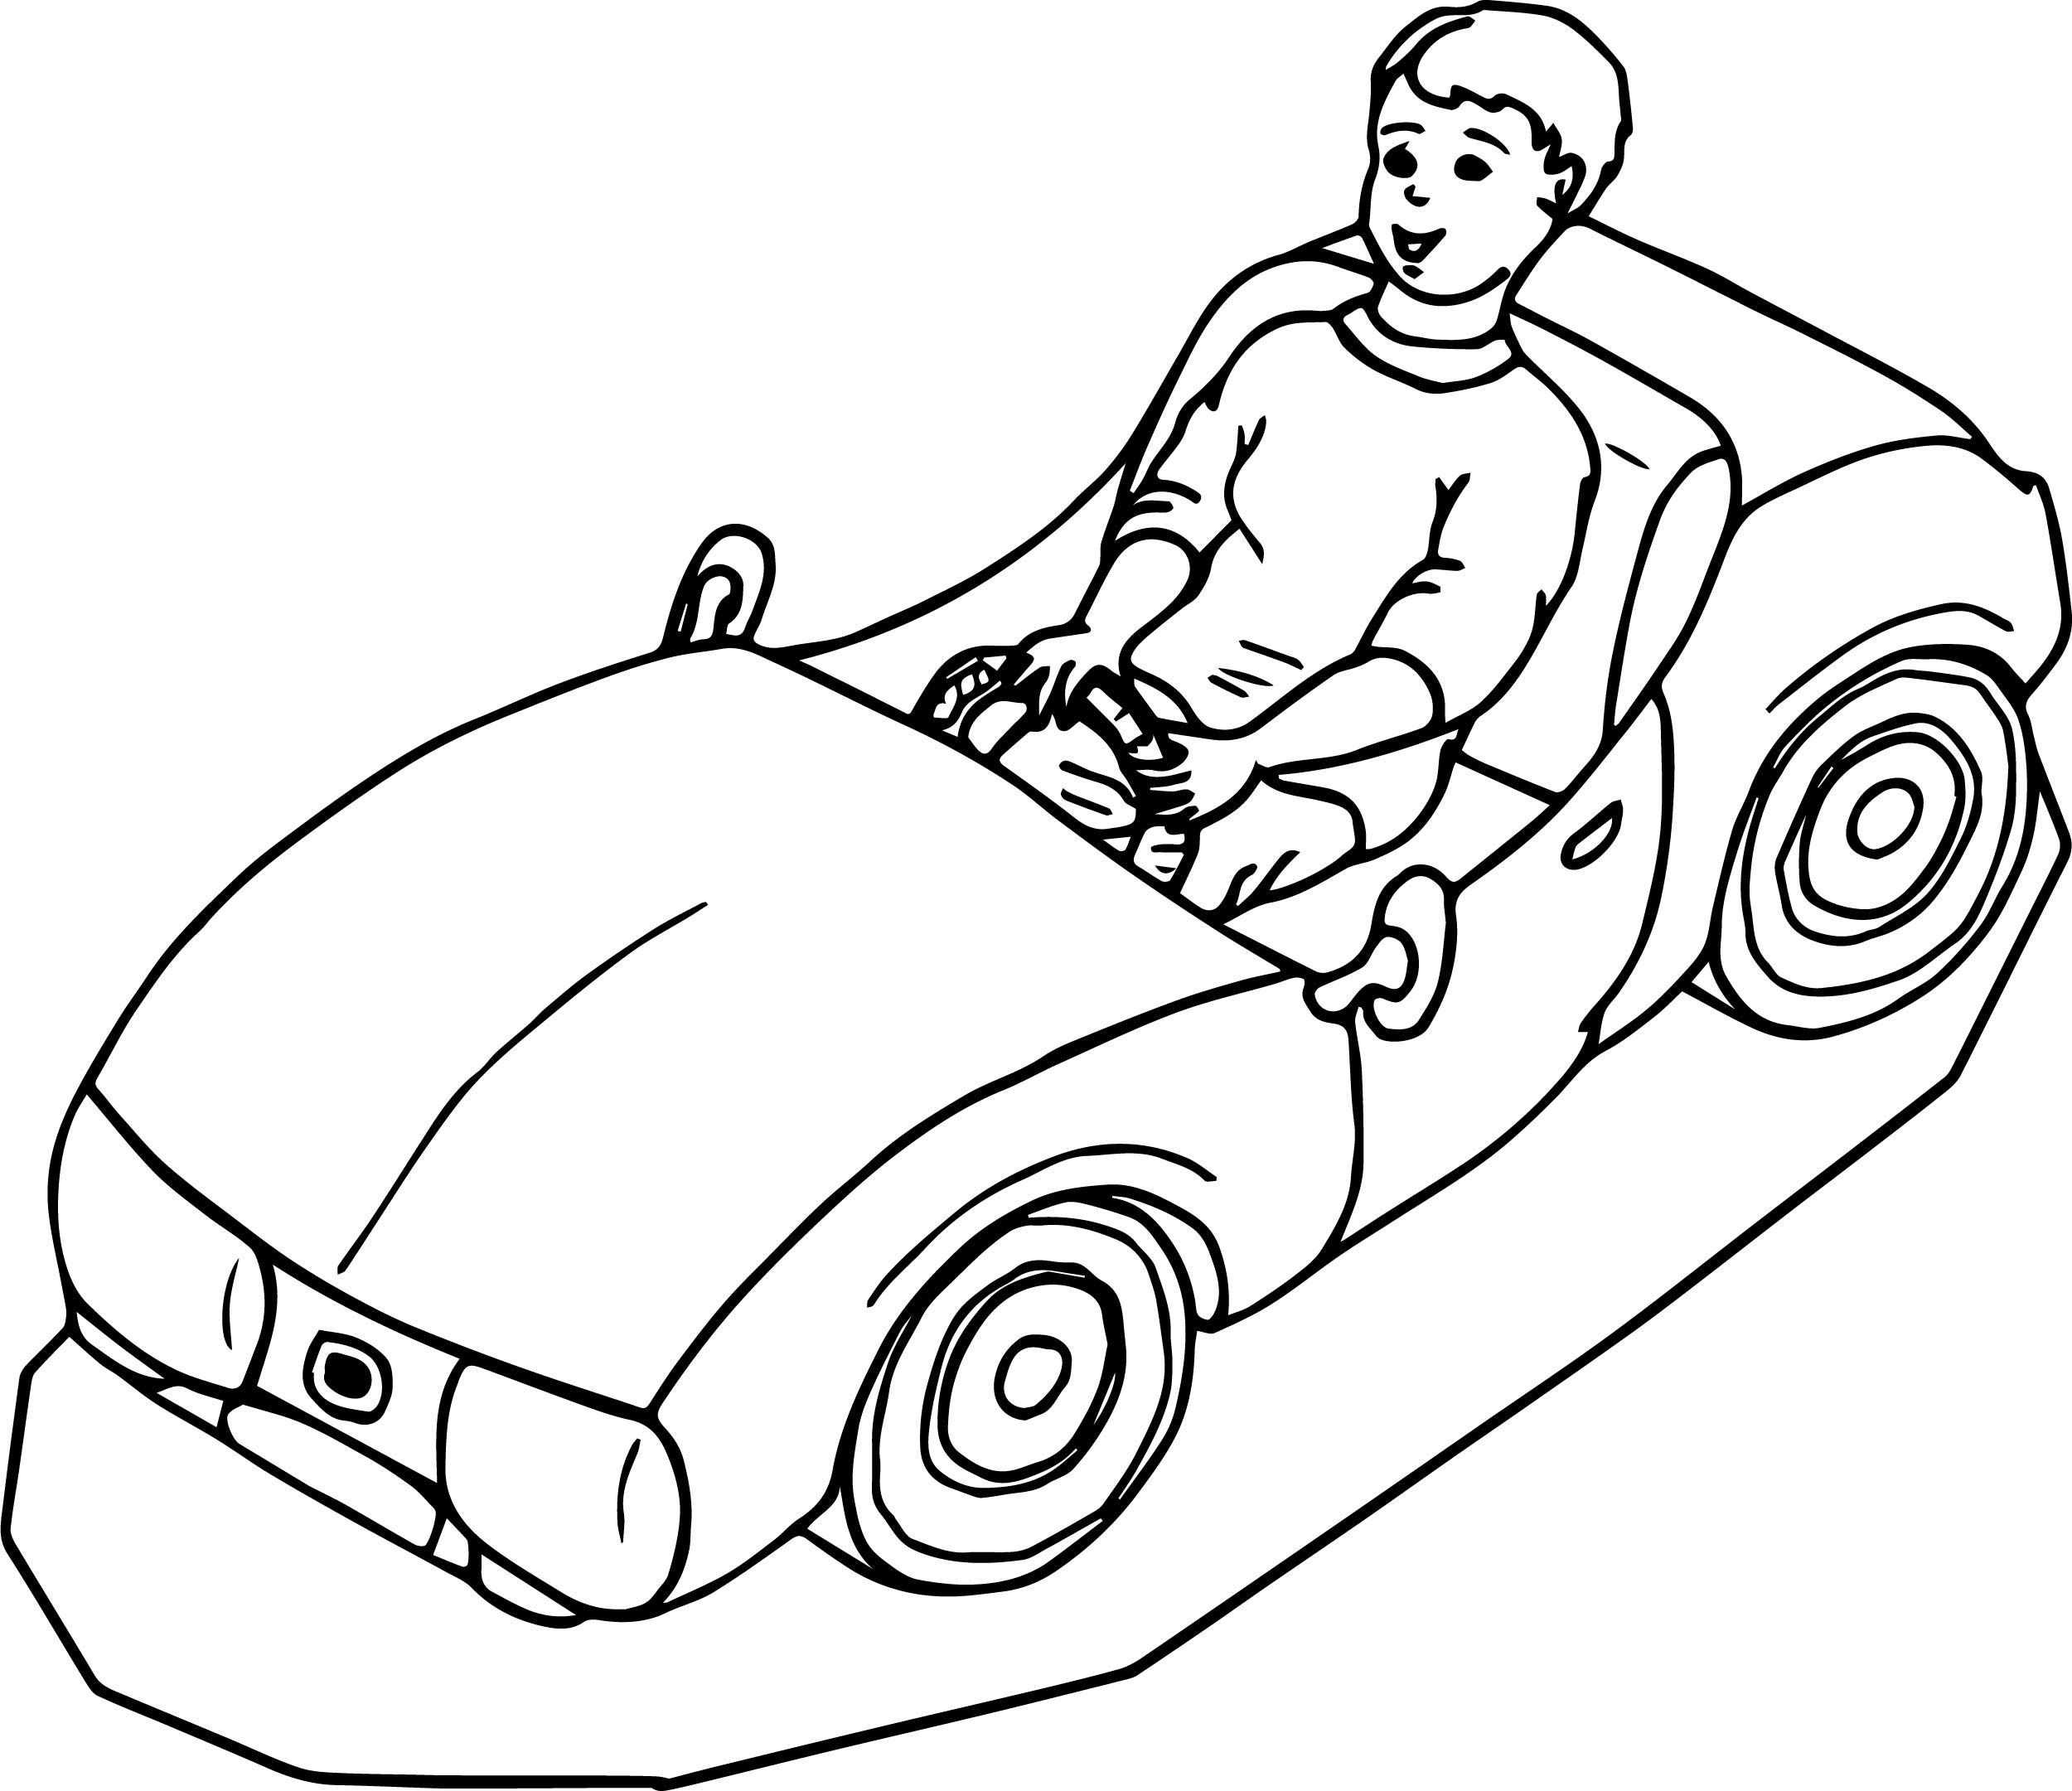 coloring toy car toy car coloring pages coloring pages to download and print car toy coloring 1 2